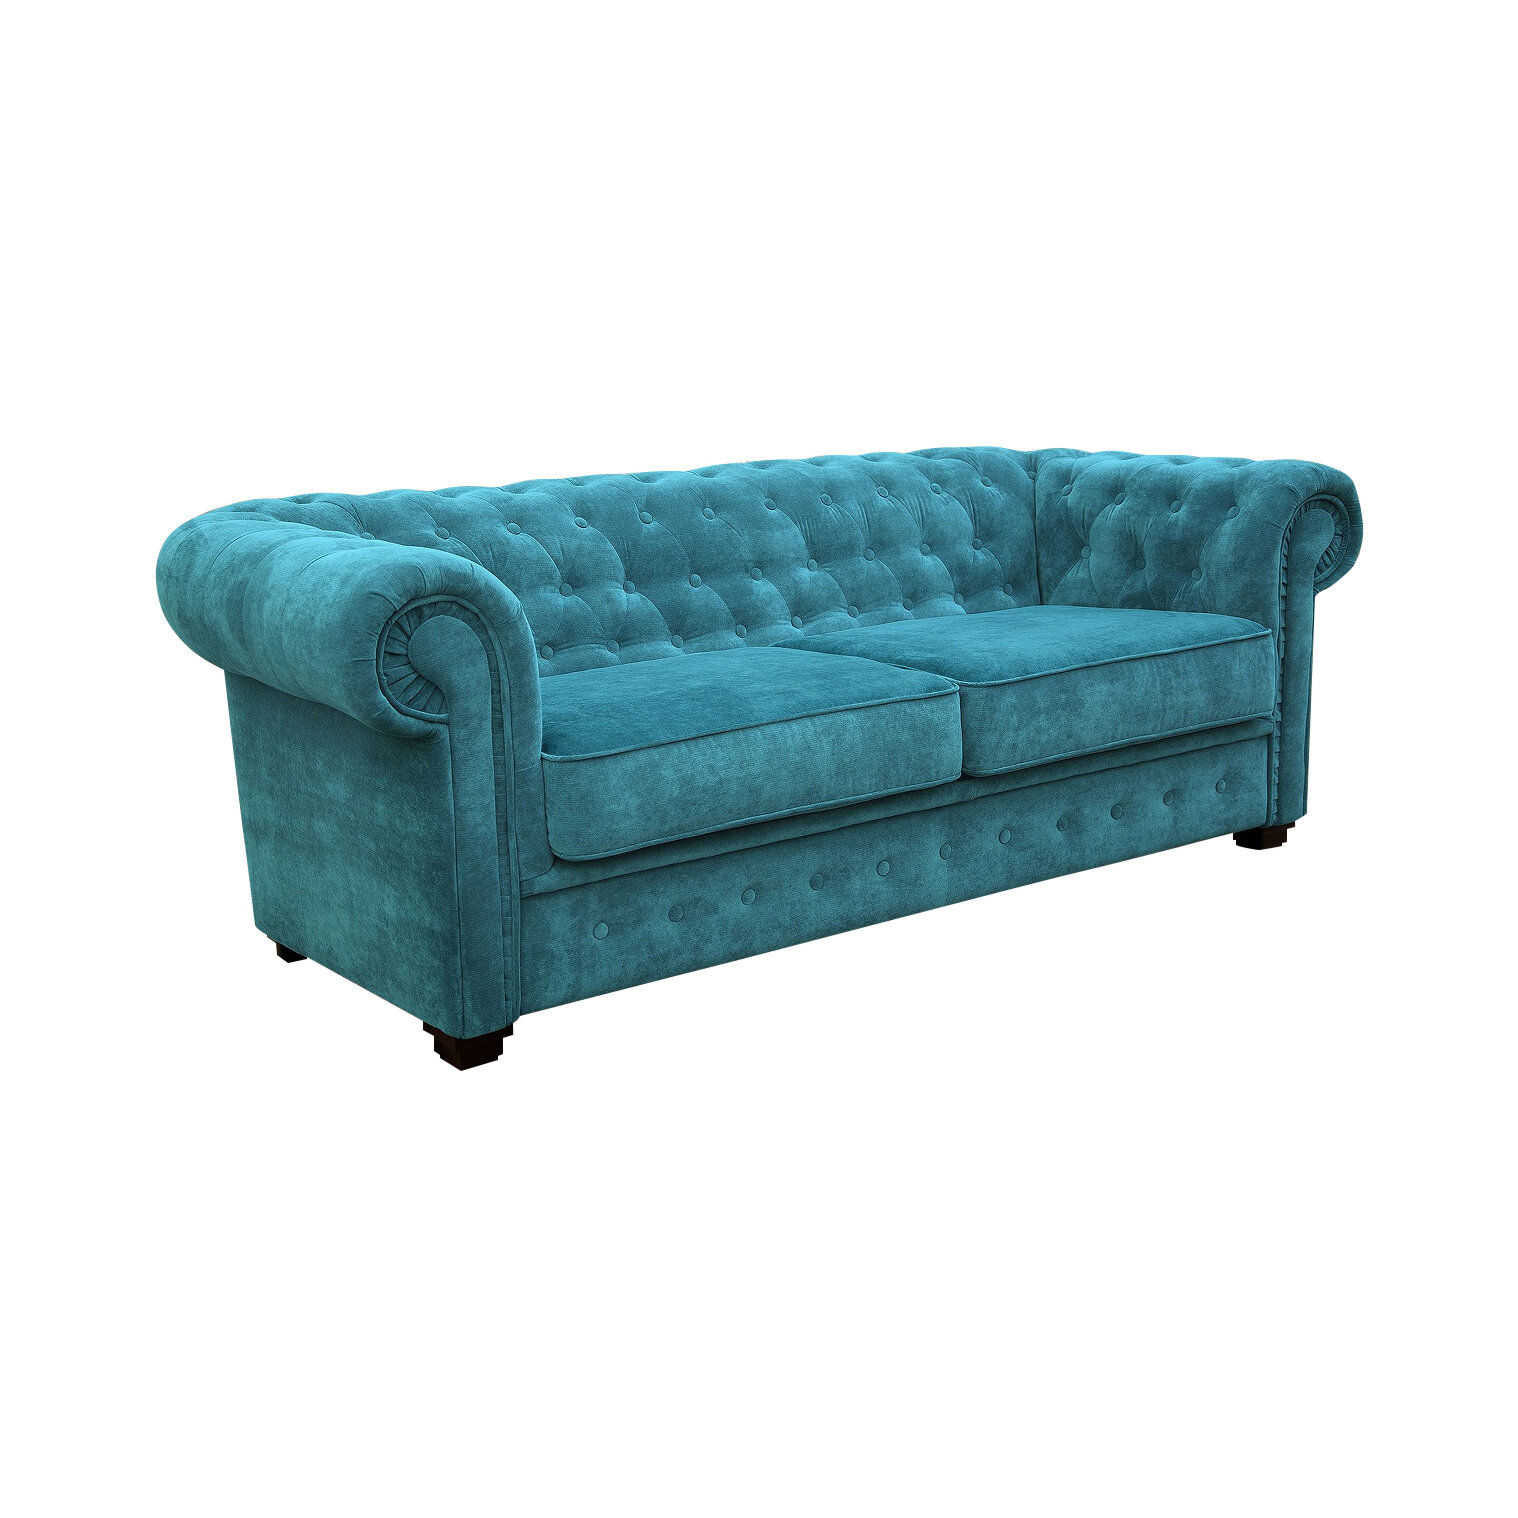 Petrol Blue Sofa Wayfair Co Uk